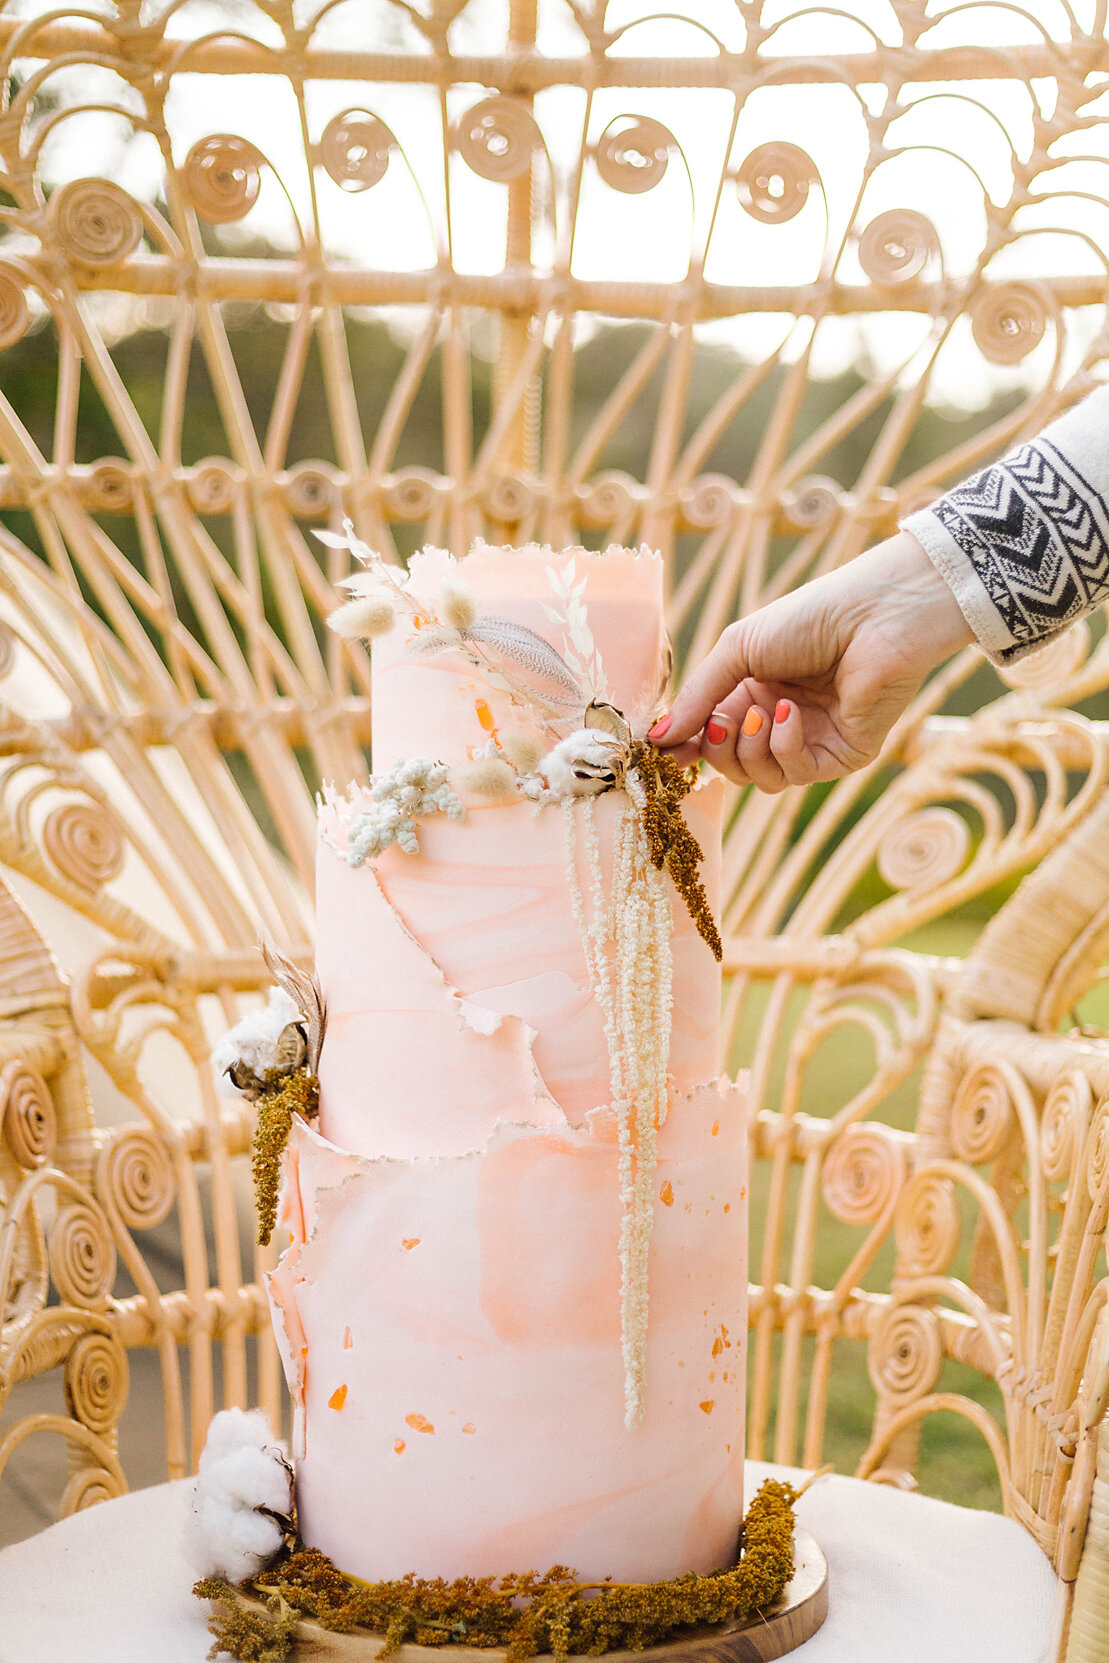 Cake by Cake House. Photography by Poppy & Sage Photography.